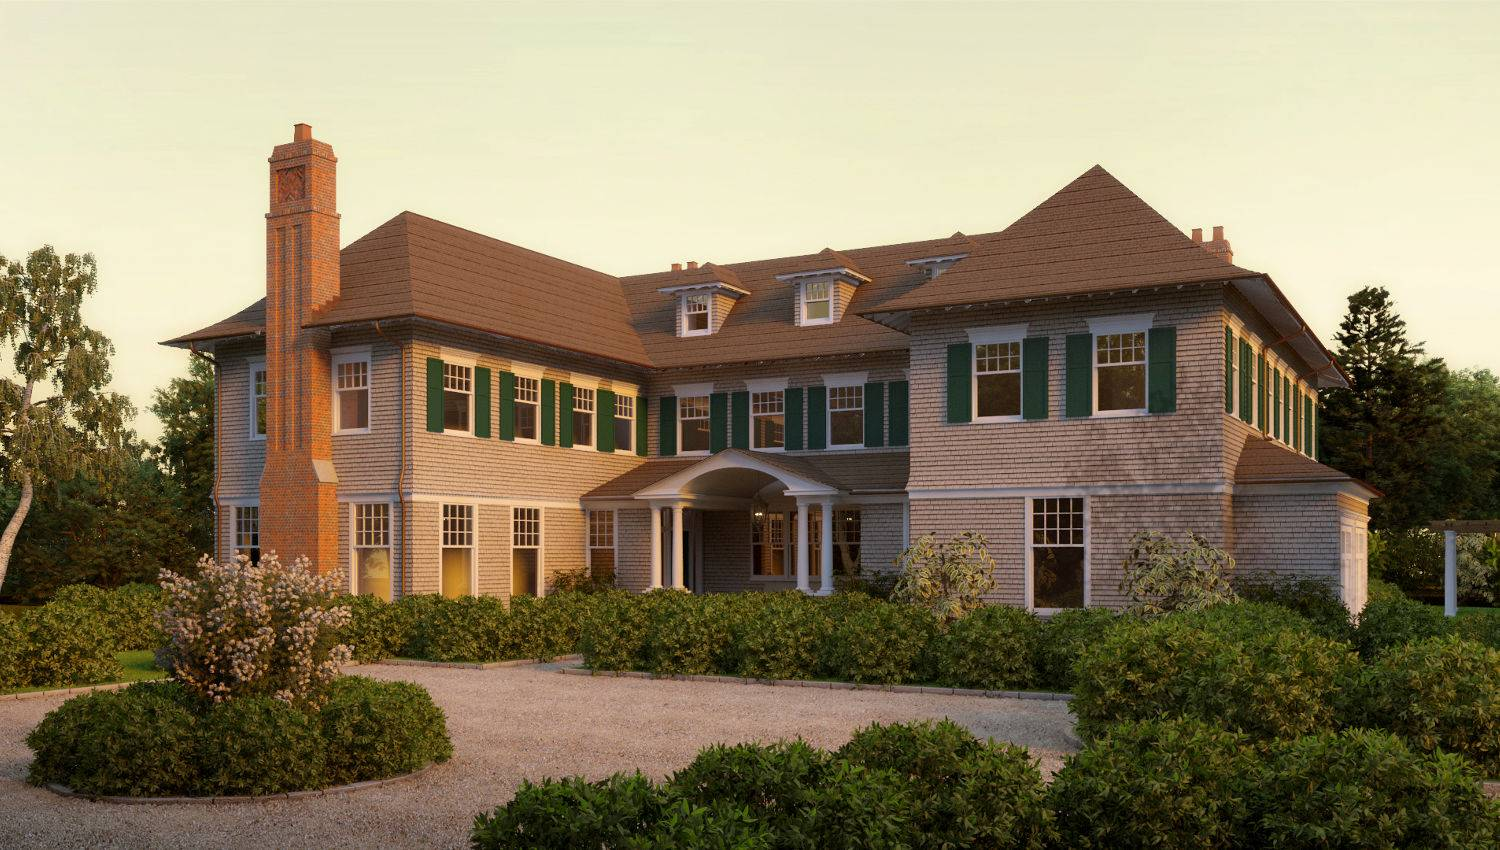 Meadowmere Lane Shingle Style Home Plans David Neff